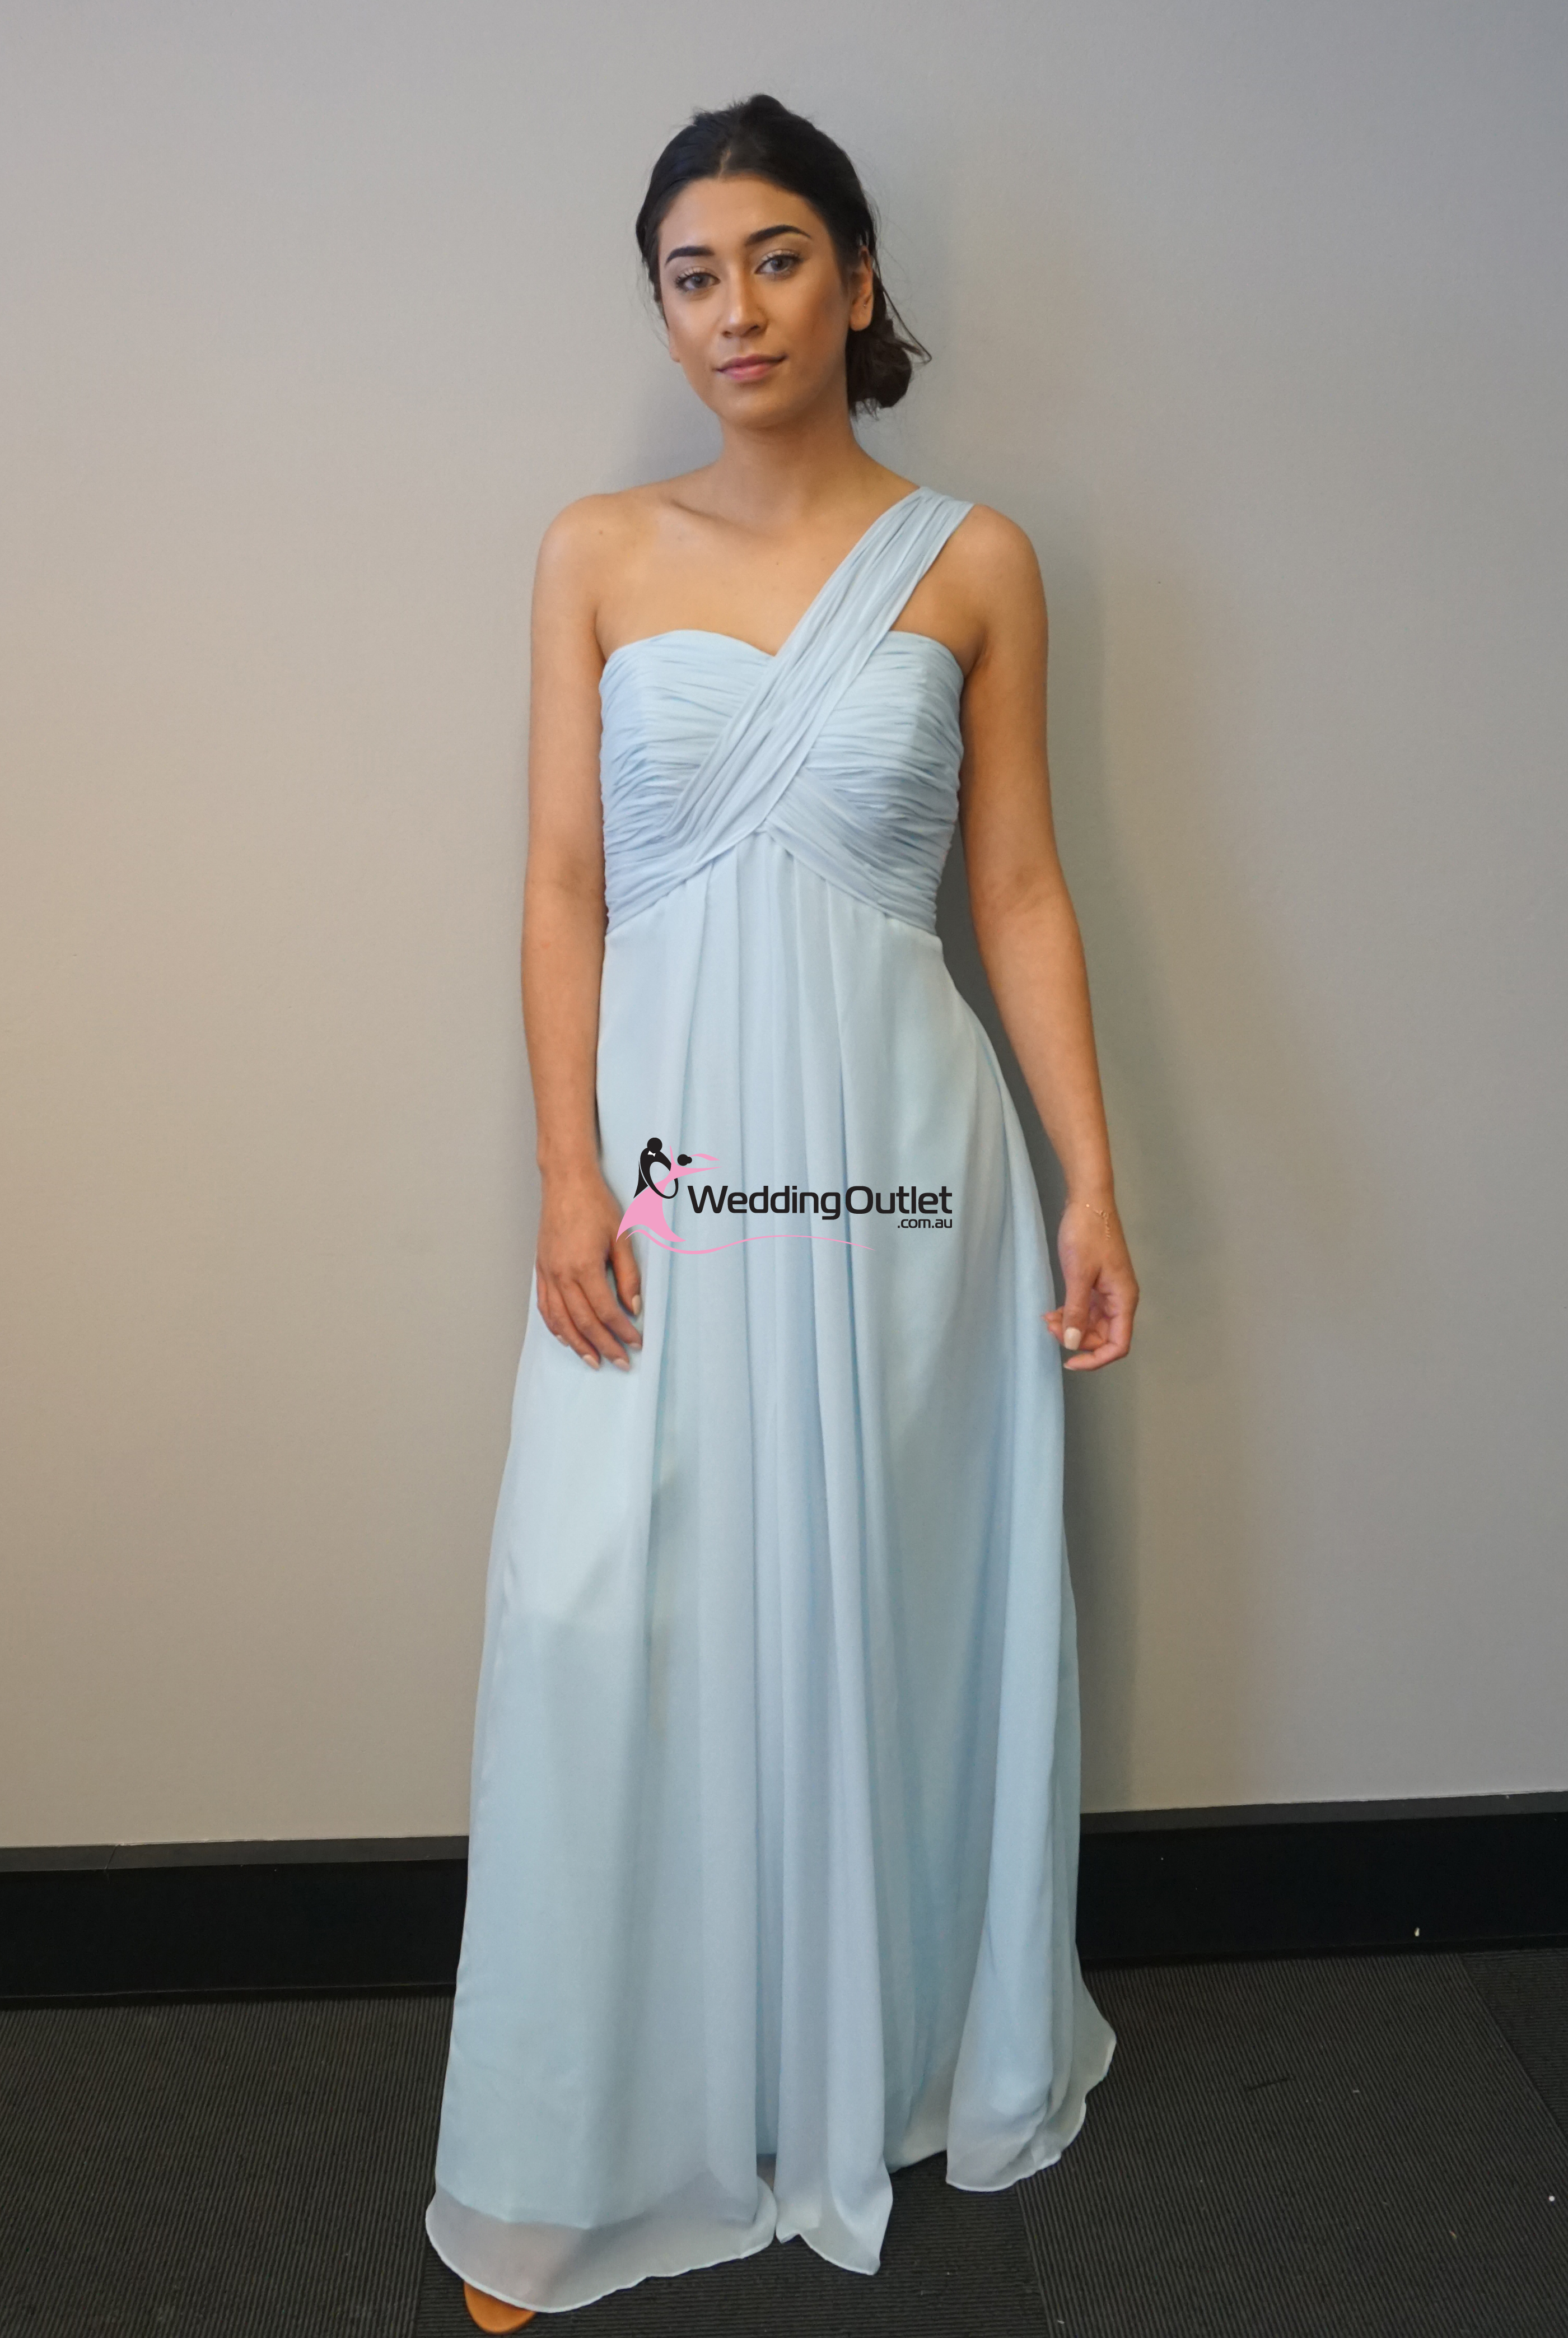 All bridesmaid dresses australia archives weddingoutlet misty blue one shoulder bridesmaid dress f101 ombrellifo Image collections